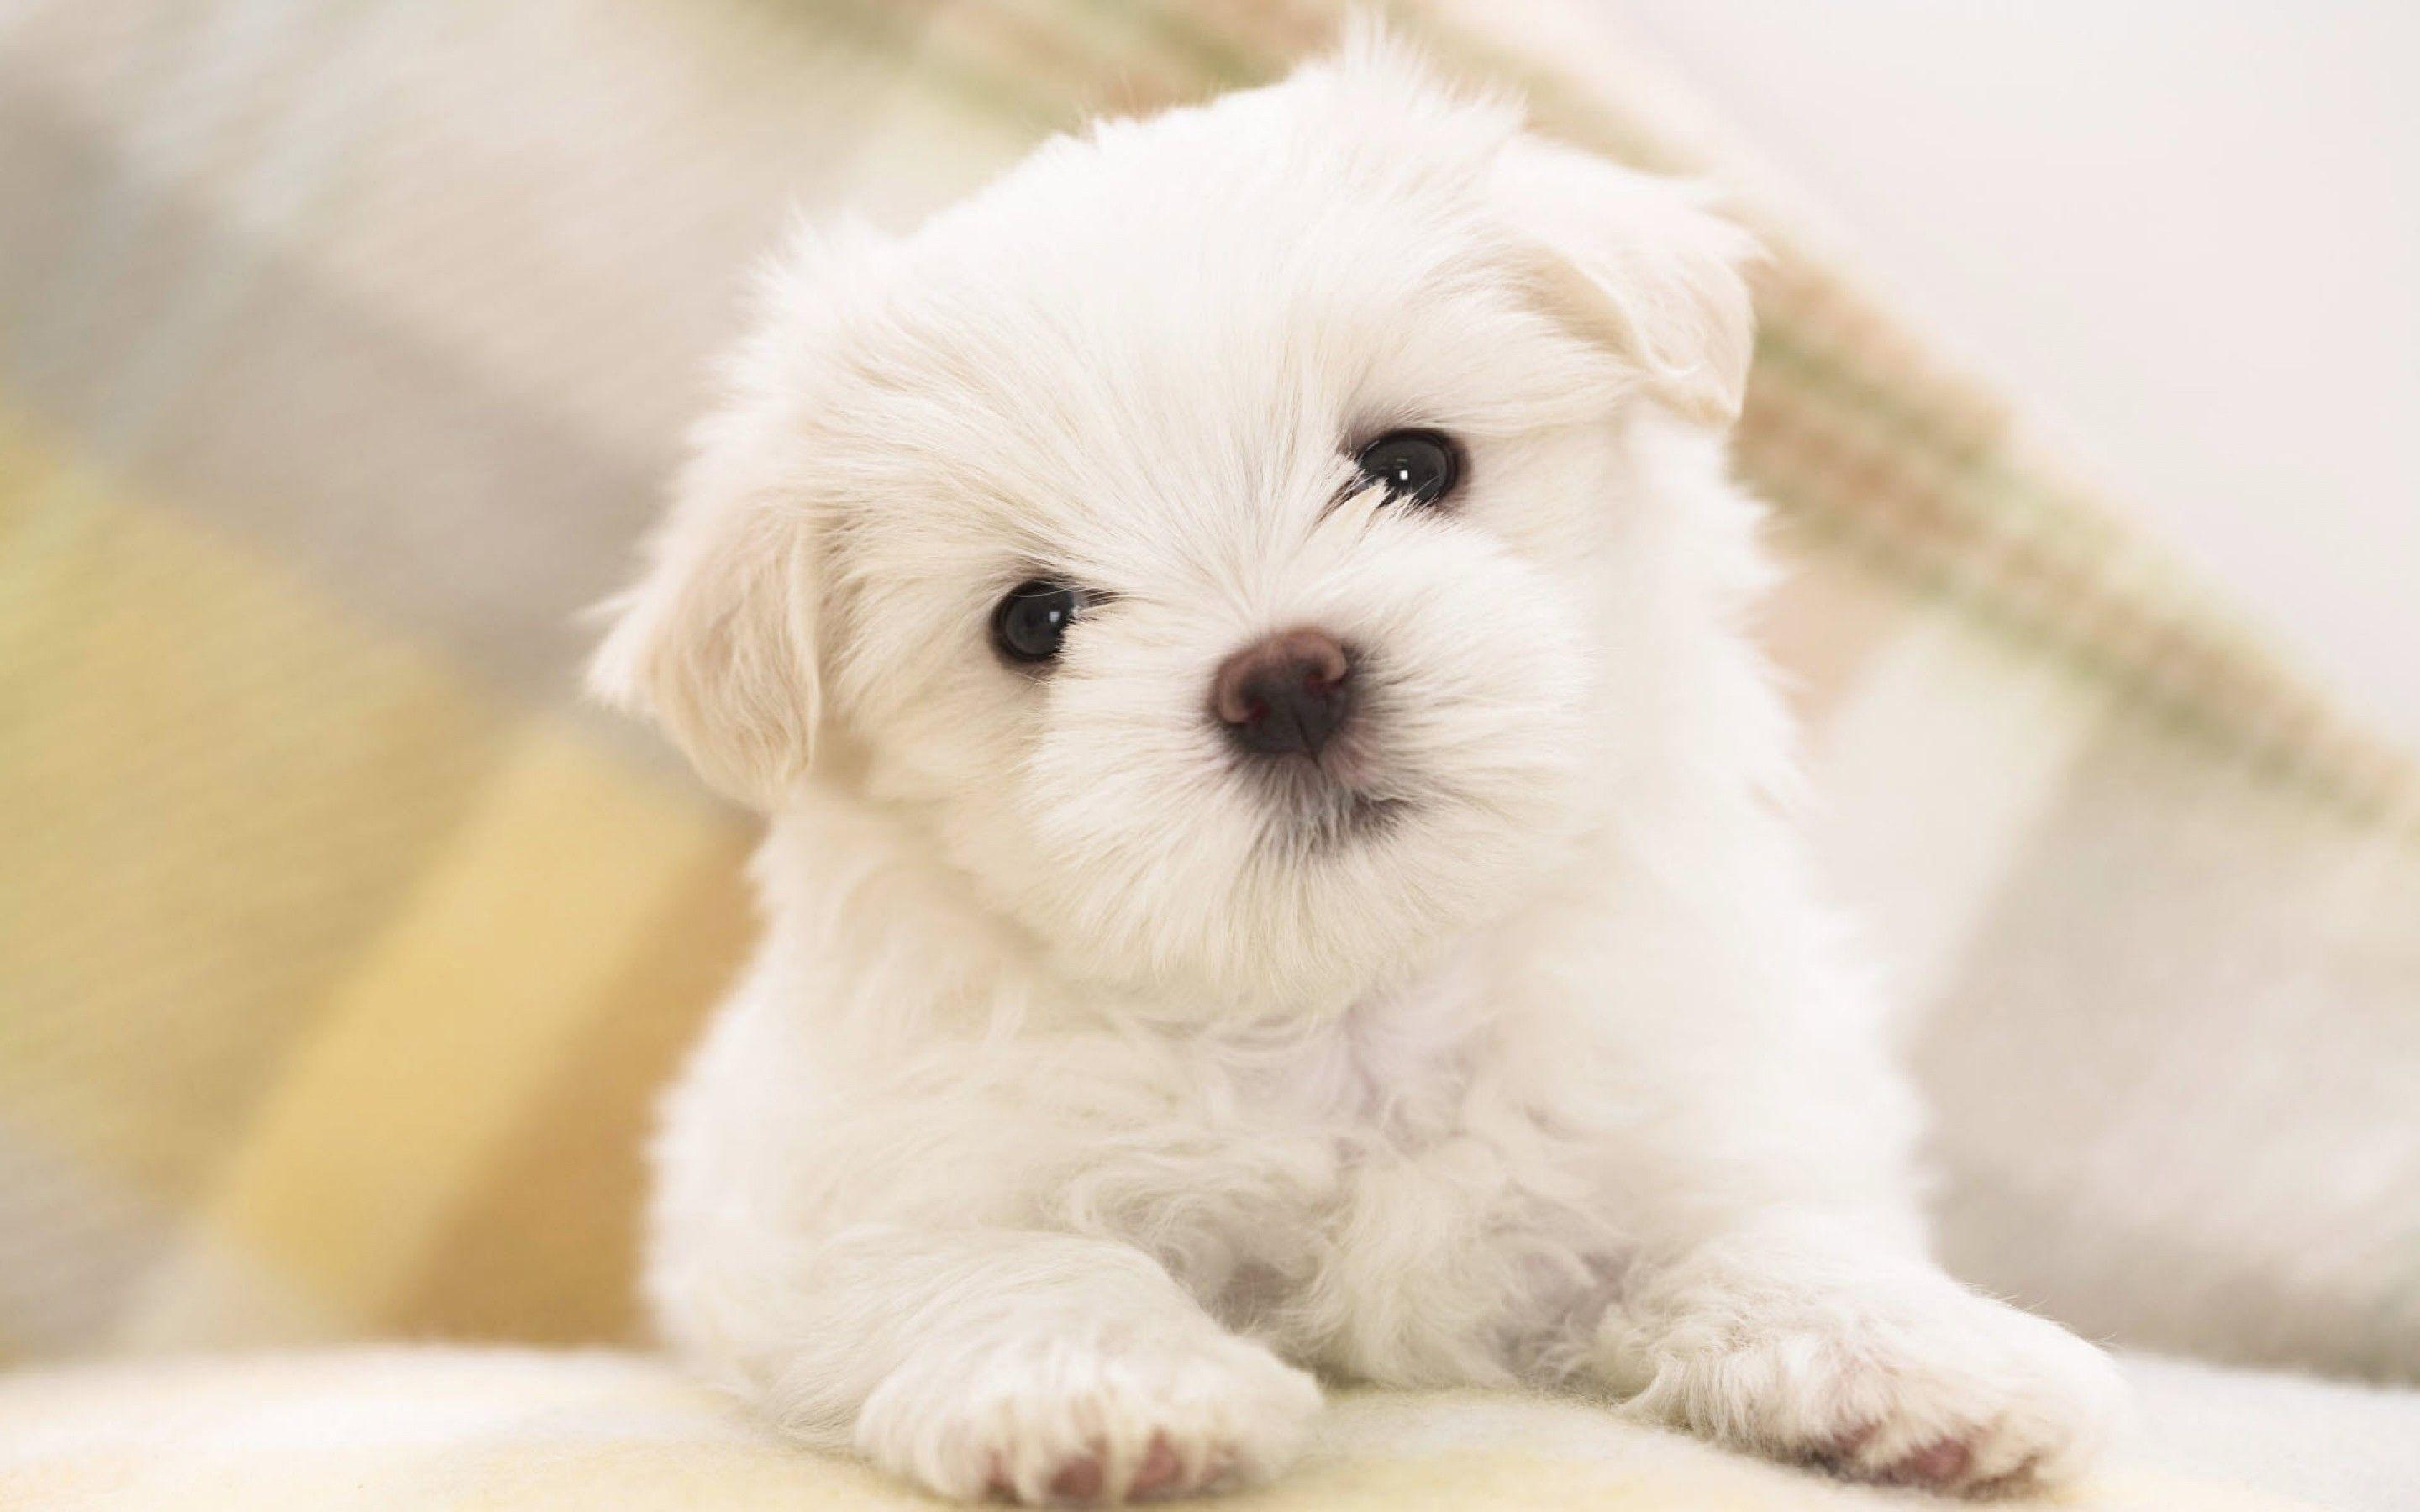 Puppy Wallpapers Wallpaper Cave